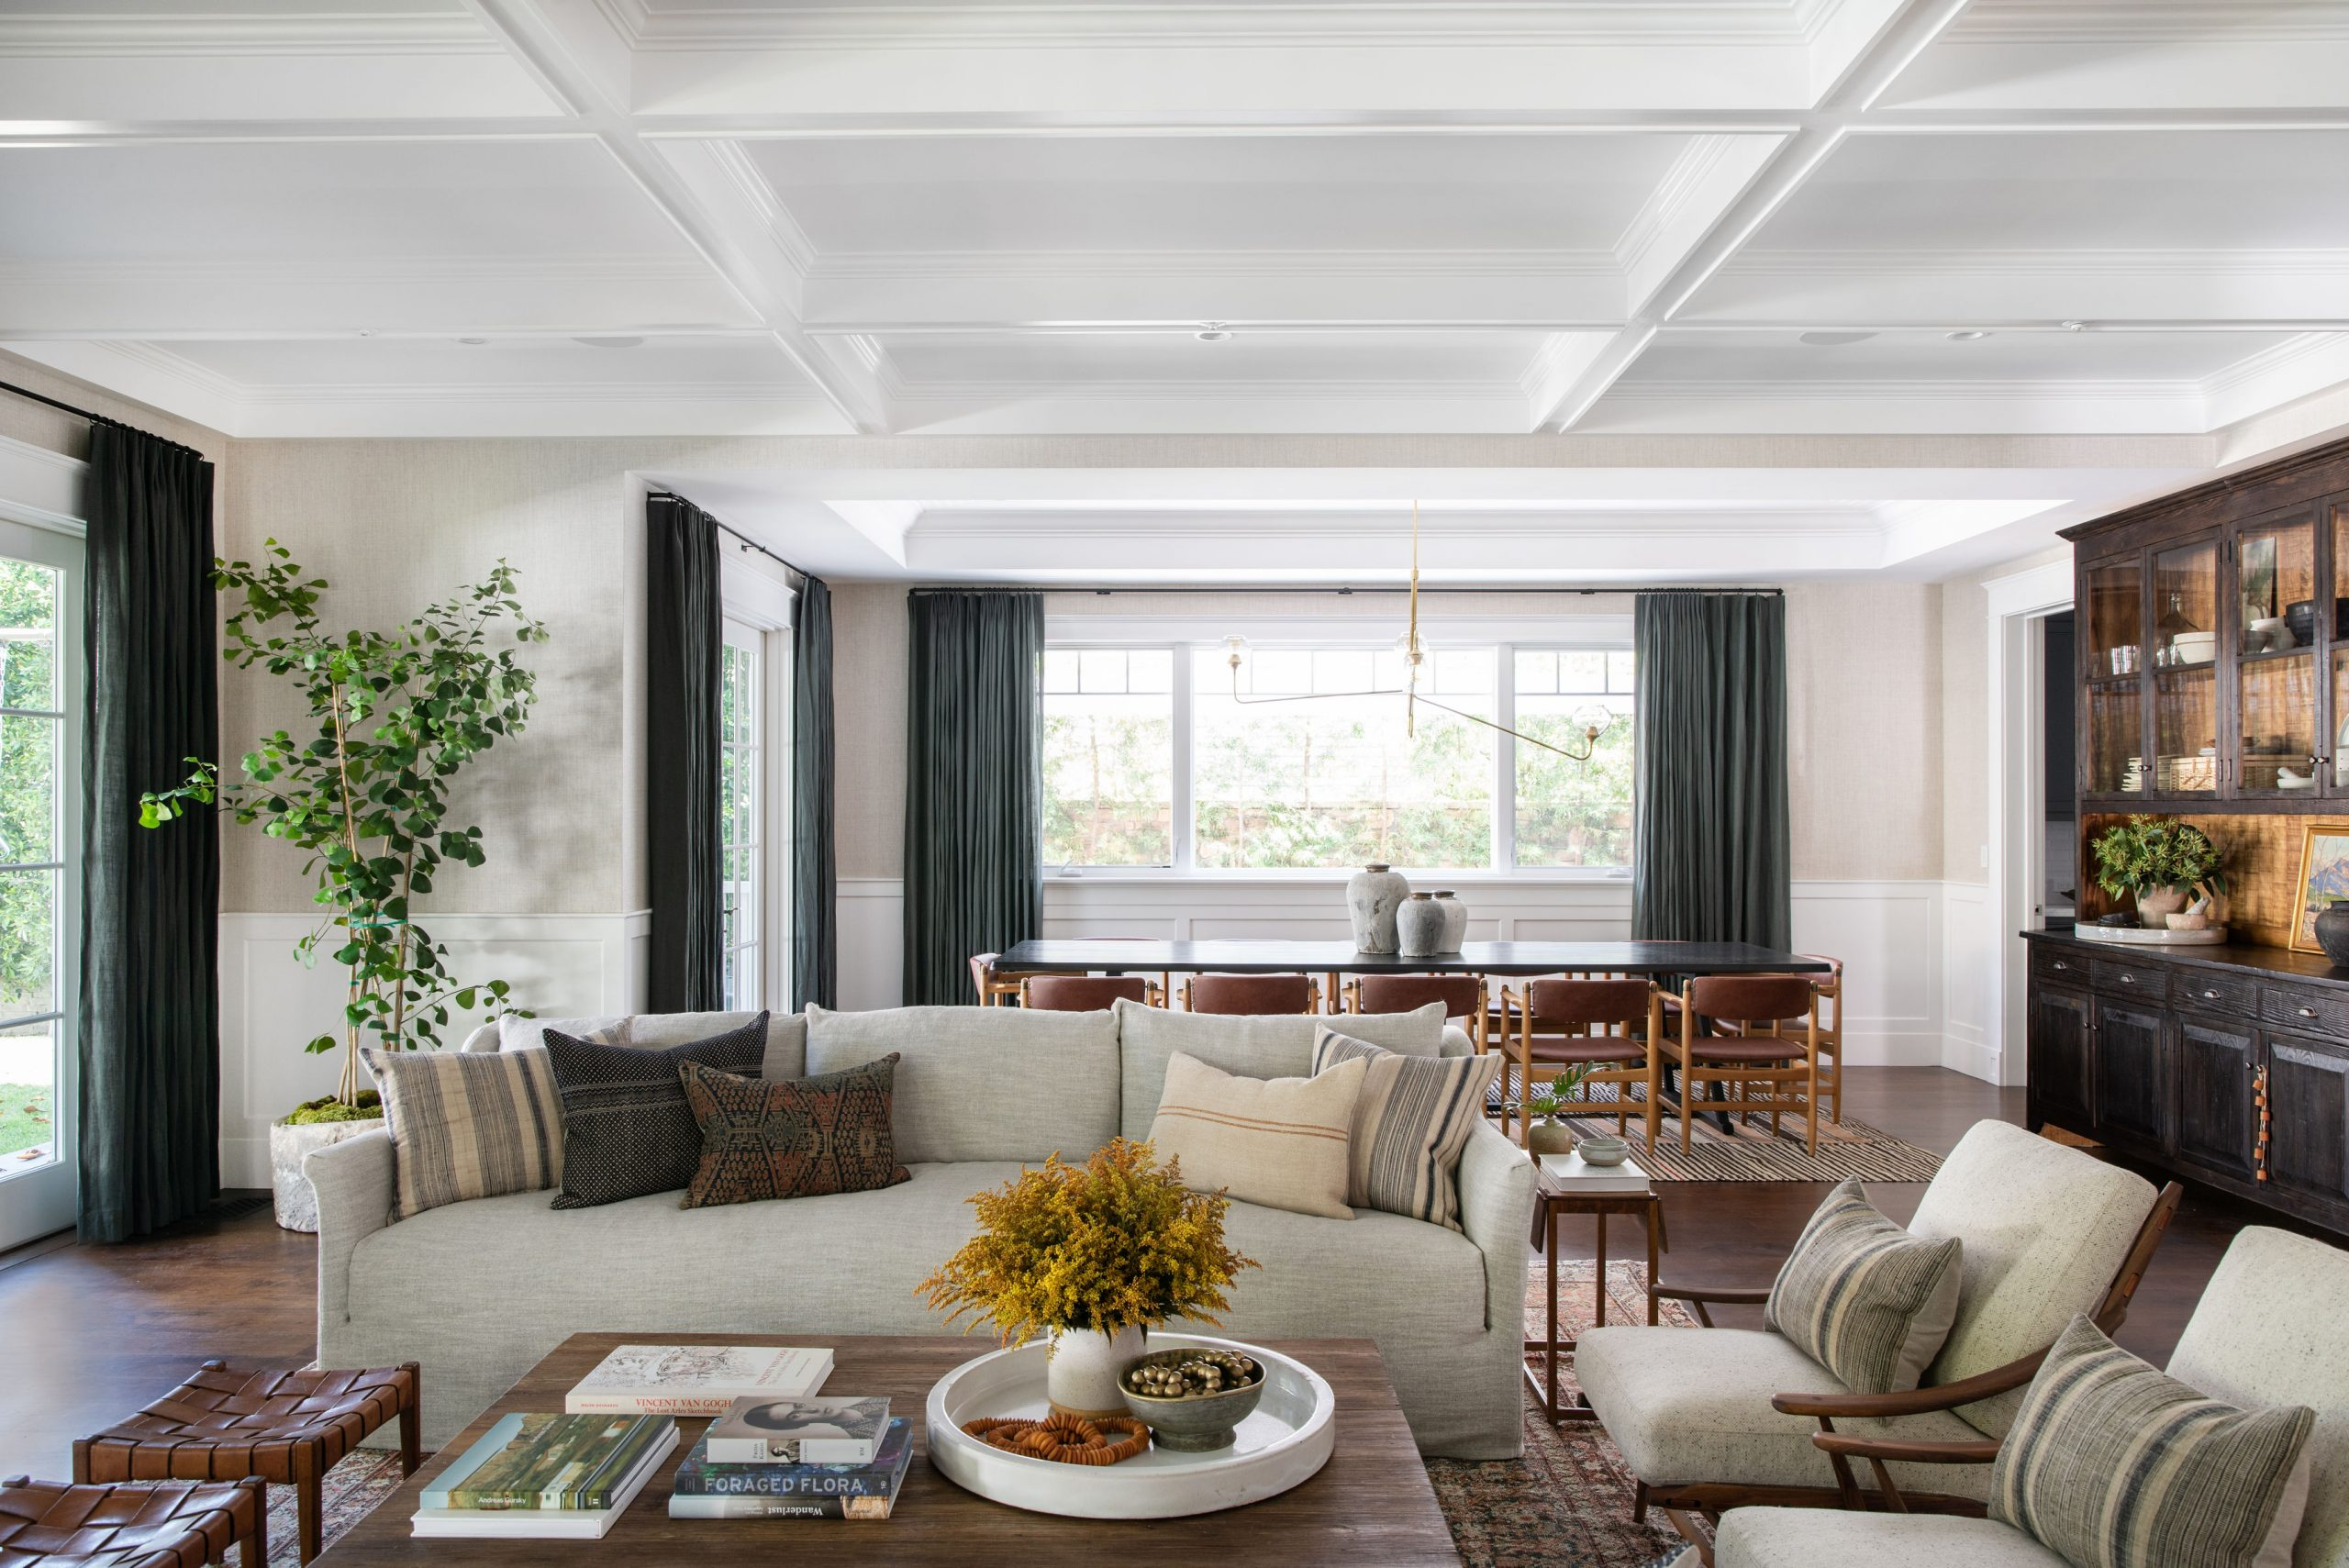 Discover The 10 Best Interior Design Projects of Amber Lewis! design projects Discover The 10 Best Interior Design Projects of Amber Lewis! Discover The 10 Best Interior Design Projects of Amber Lewis 6 scaled